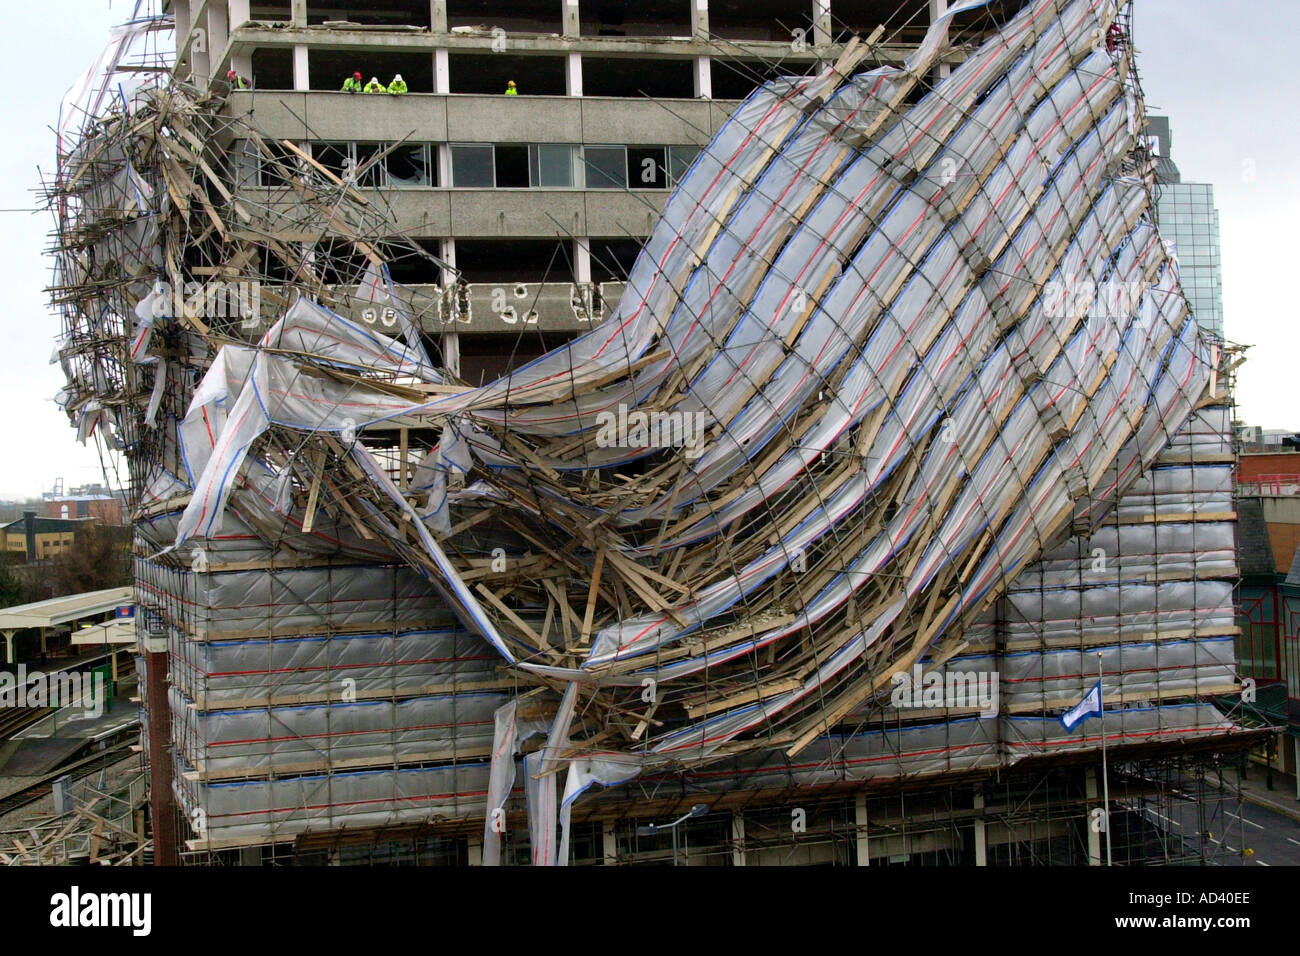 Aftermath of high winds in Cardiff scaffolding collapse on ...